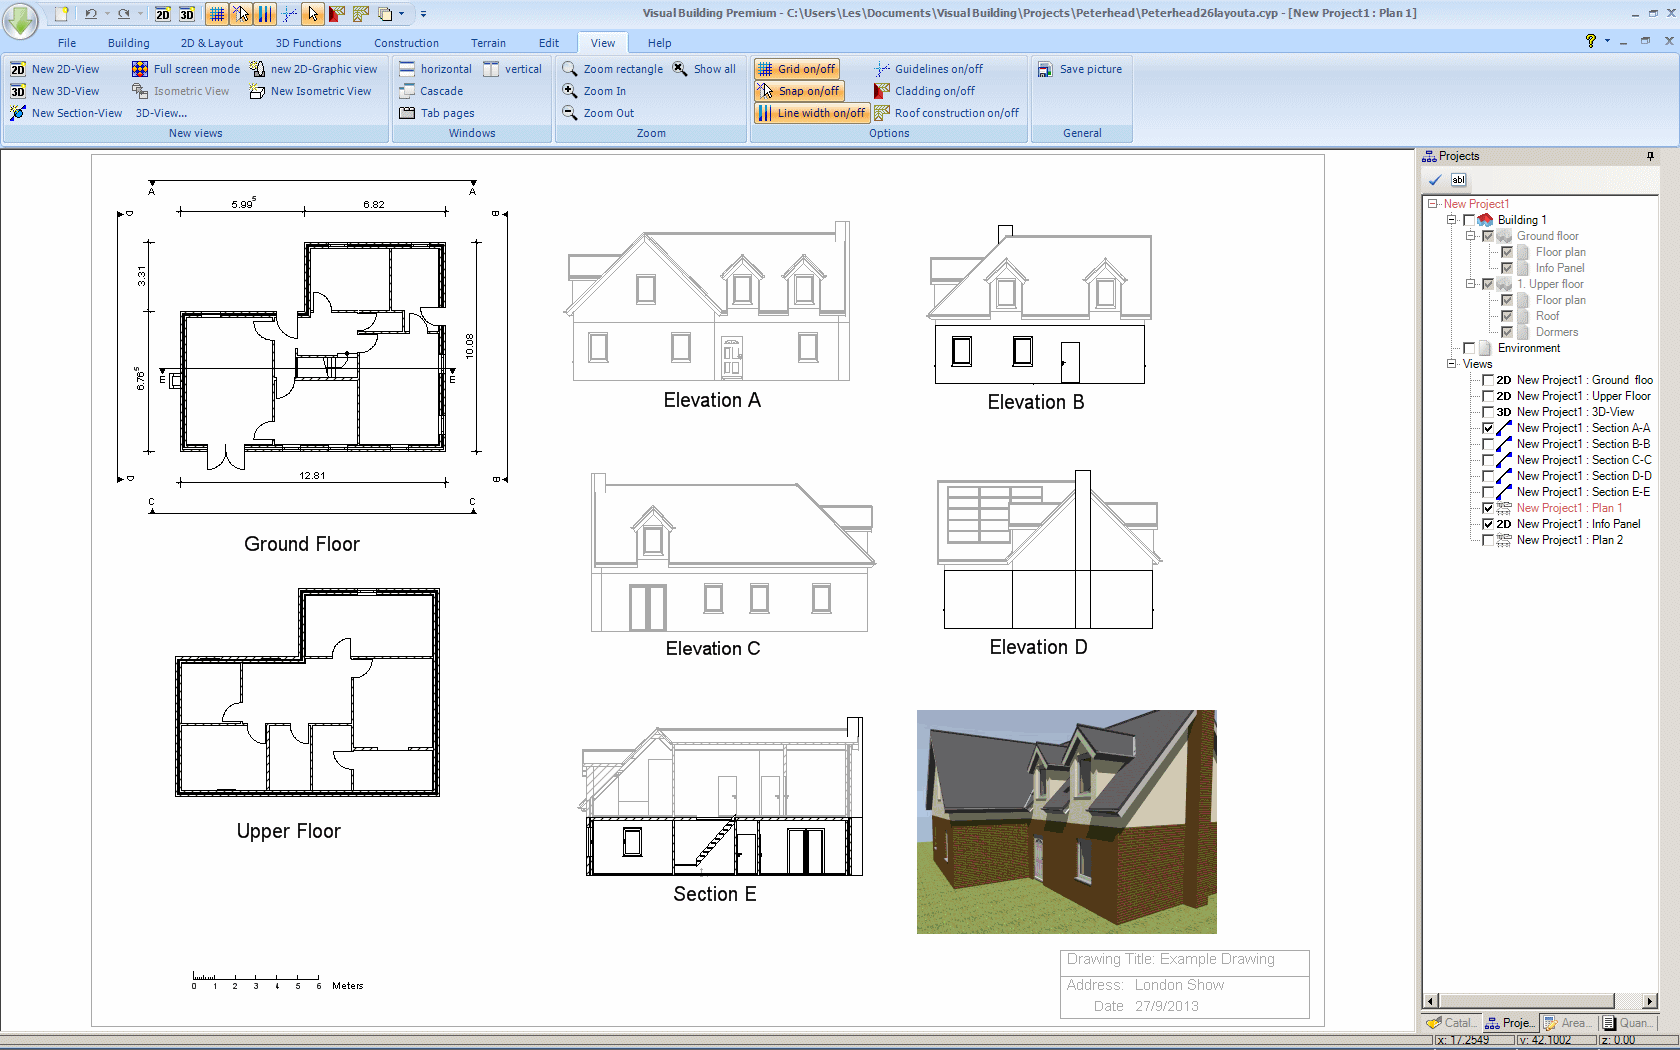 2D Sectional Views